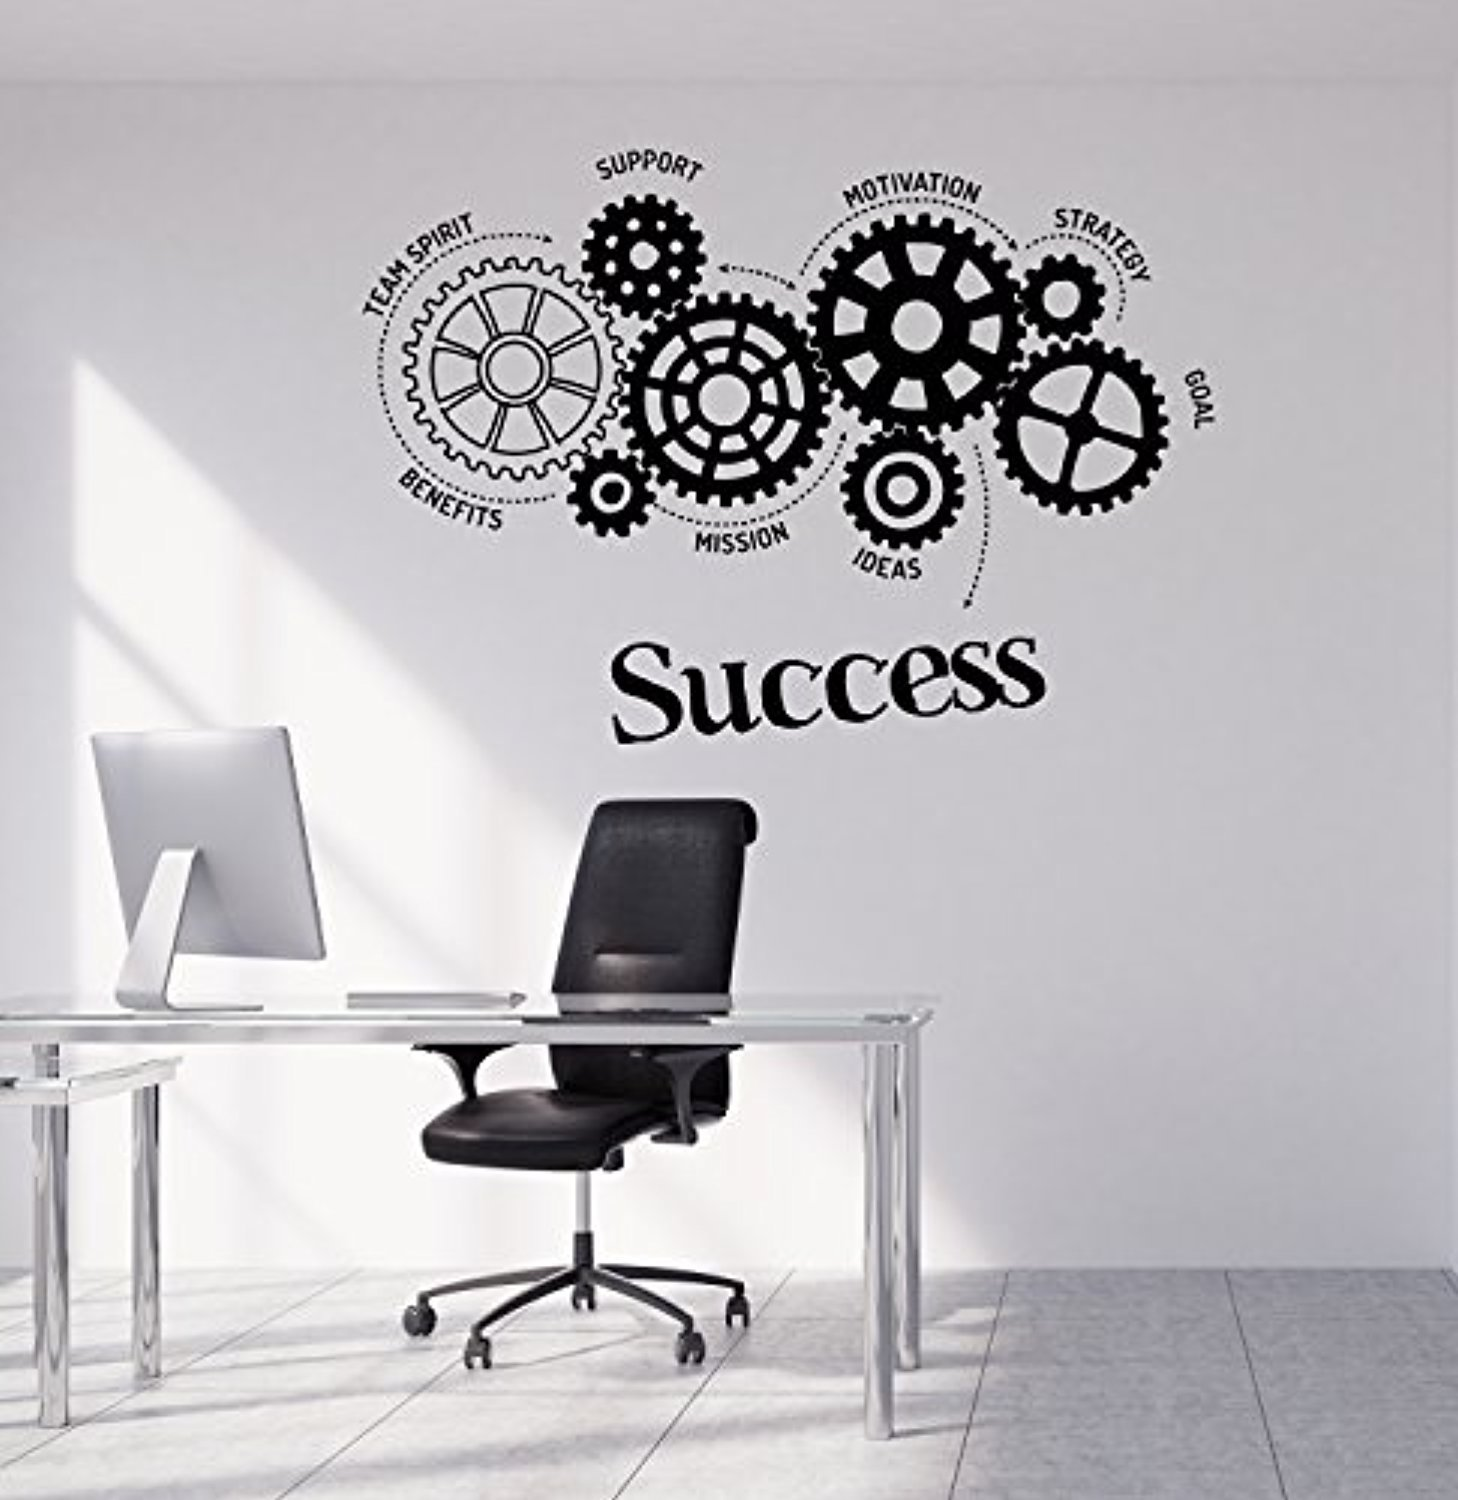 Amazon com art of decals amazing home decor large vinyl wall decal success words gears office motivation stickers large decor made in the usa removable